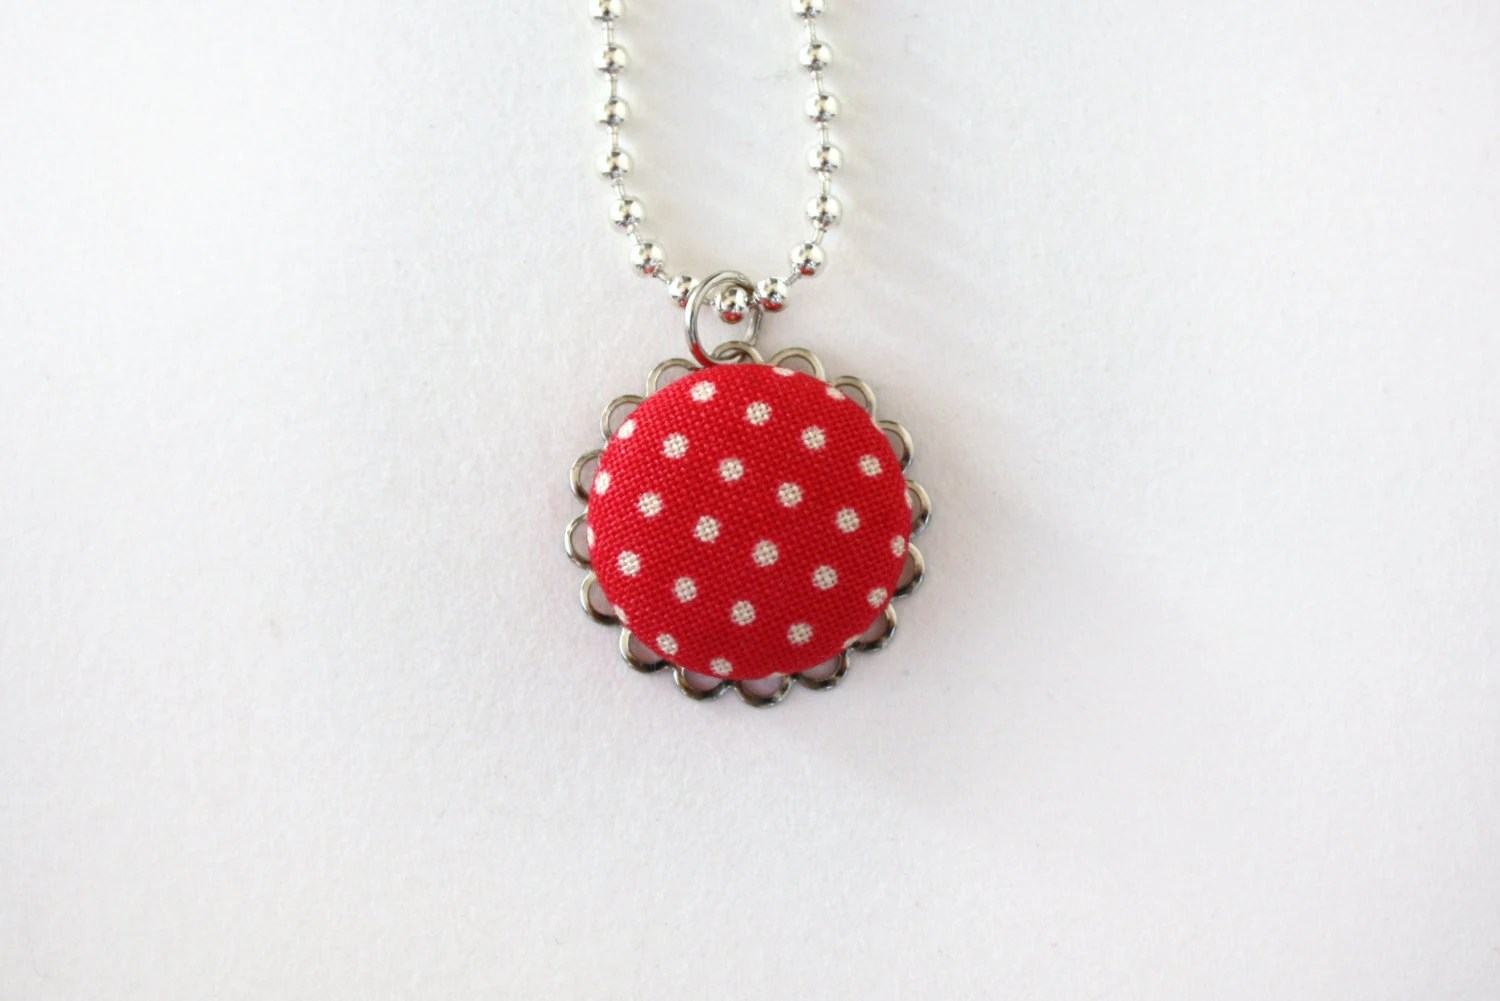 Necklace, Coral Red Polka Dot , Scallop, Jewelry,  Pendant, Ball Chain, Fabric, Spring - AppleWhite